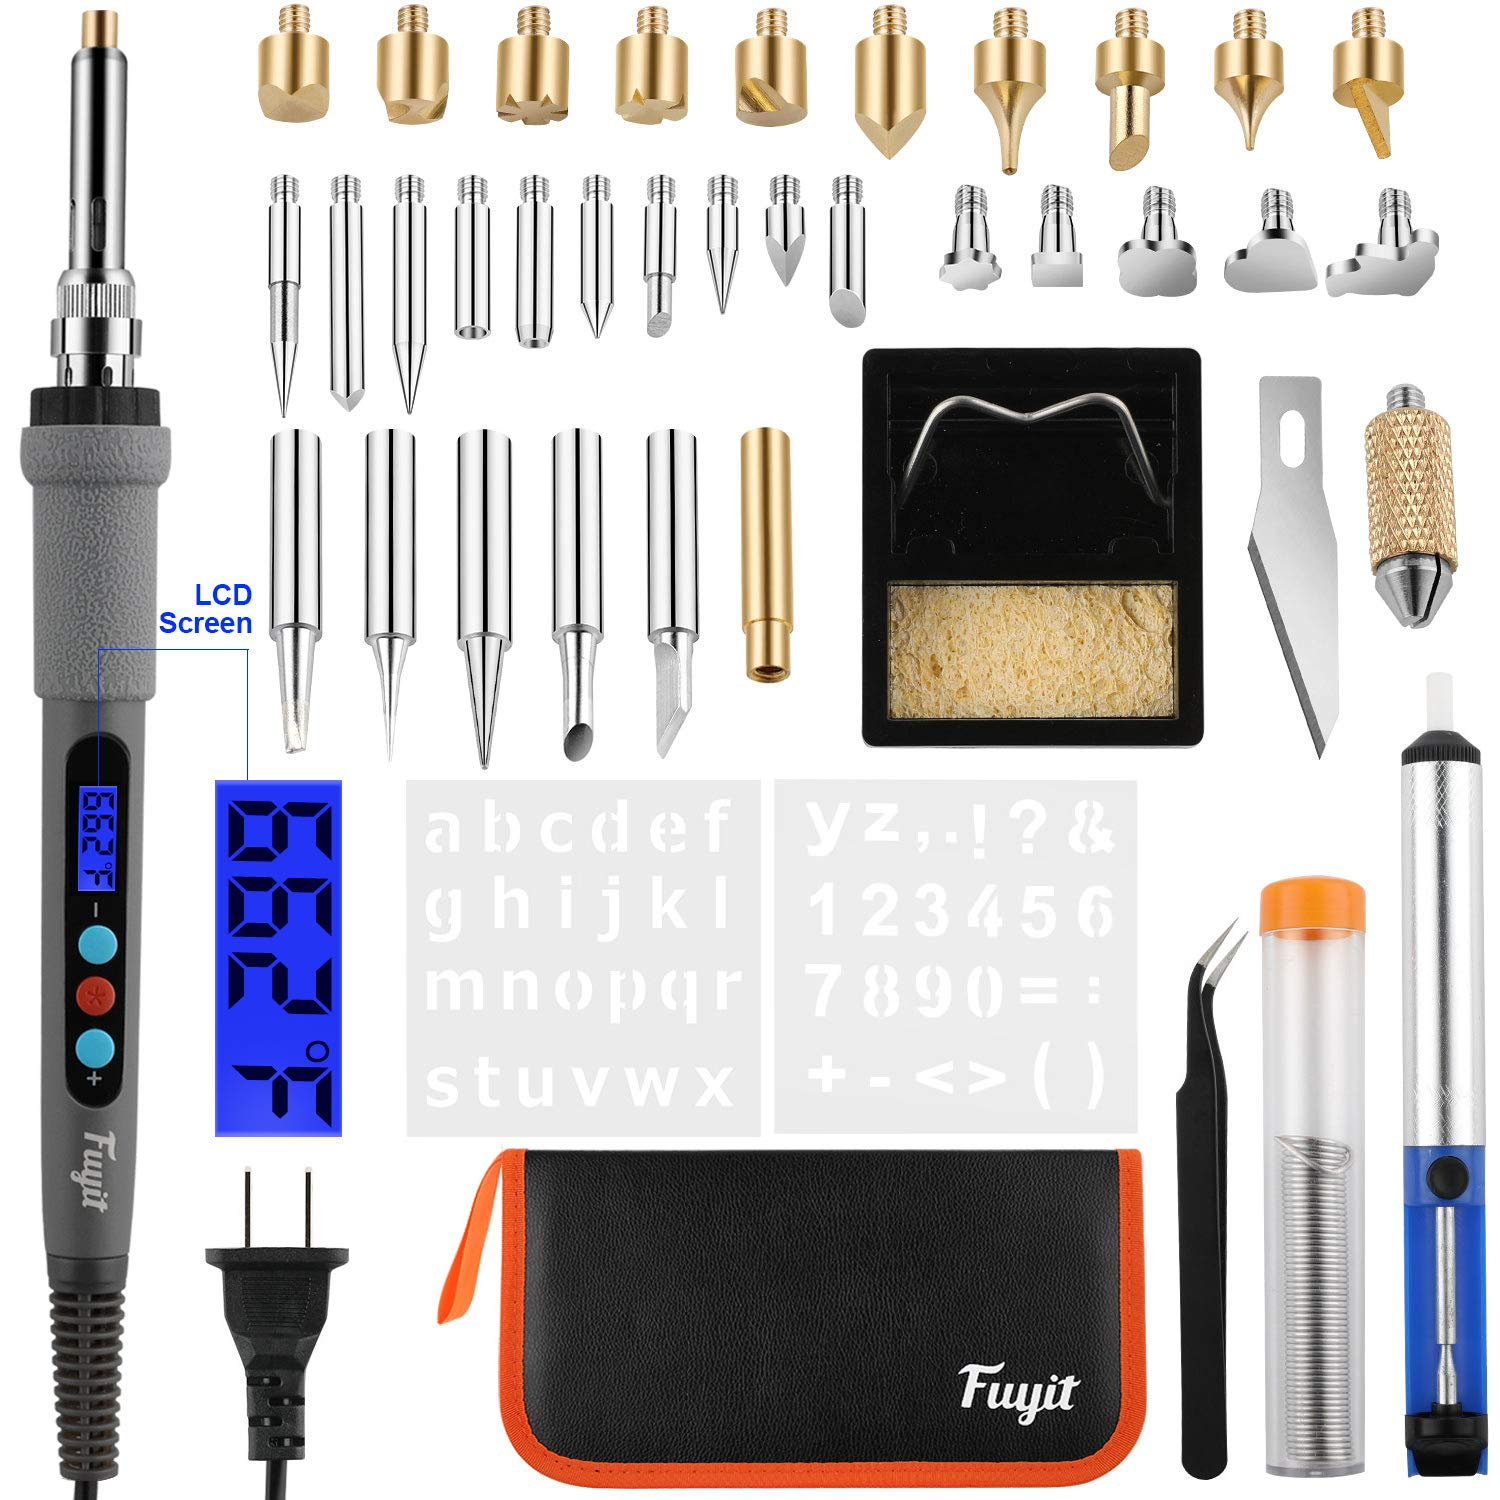 Fuyit 42Pcs LCD Wood Burning Kit, Pyrography Pen with Various Temperature Control, Woodburning Craft Tips for Wood Burning, Soldering, Carving, Embossing